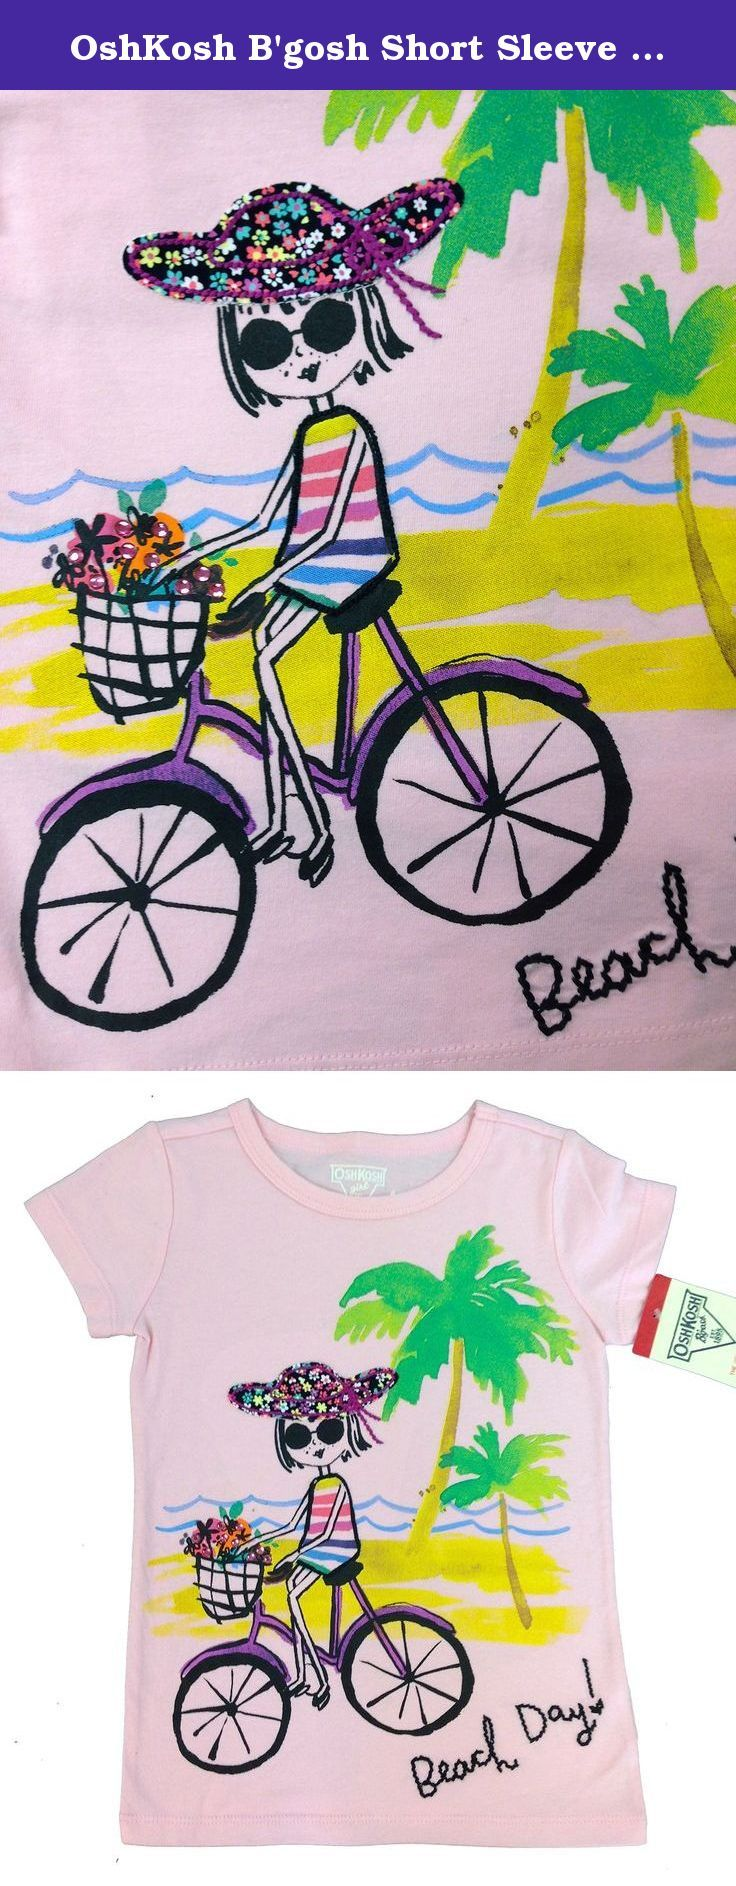 OshKosh B'gosh Short Sleeve Graphic Tee - Pink-4. OshKosh B'gosh Short Sleeve Graphic Tee - Pink OshKosh offers style-conscious kids everything from casual playwear to special occasion dresses, staying true to its roots in quality, durability and craftsmanship.